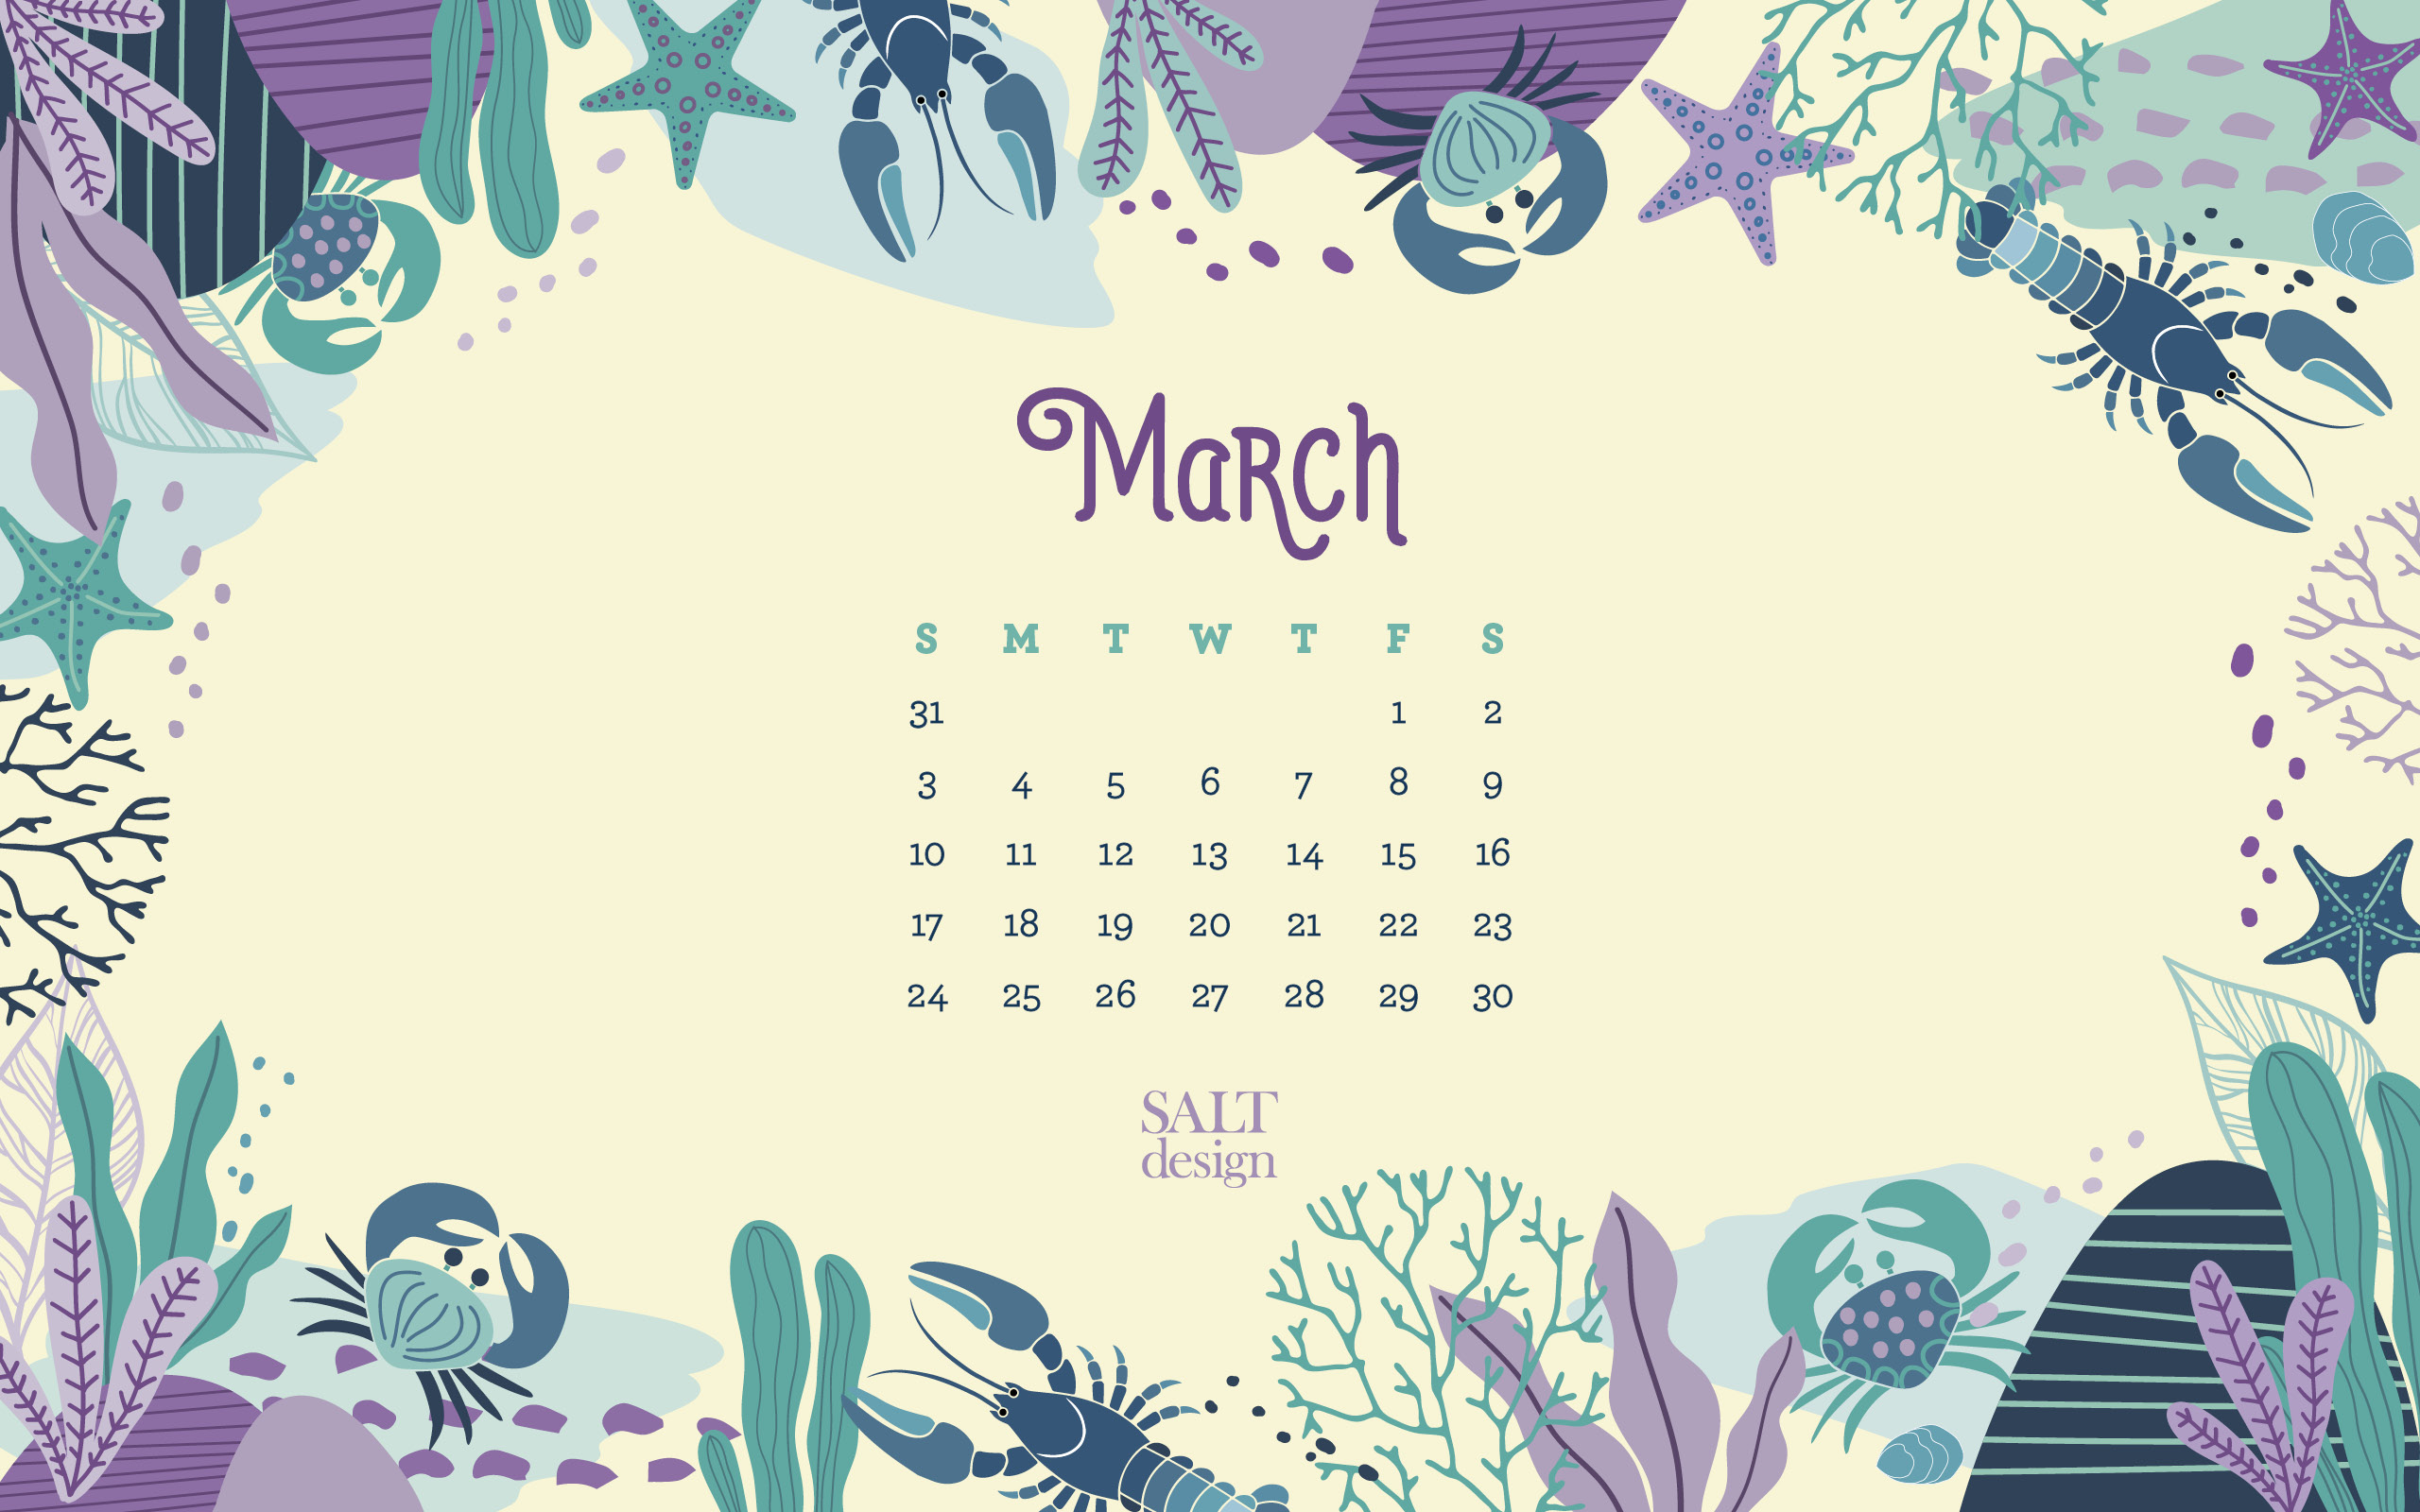 SALT 2019 March Calendar FREE Wallpaper   Salt Design 2560x1600